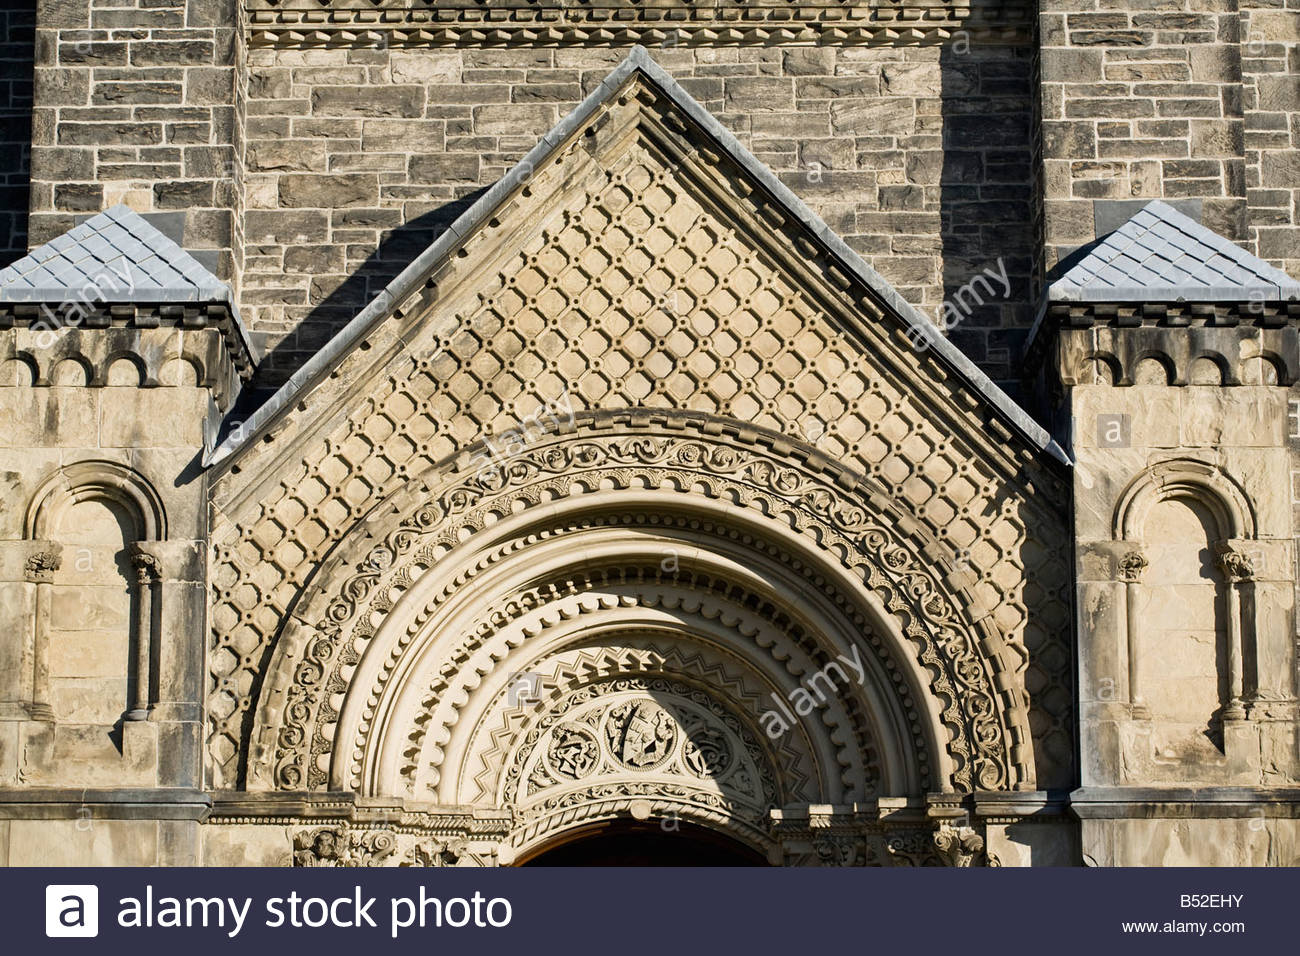 Compound arched doorway of University College at the University of Toronto in Toronto Ontario Canada - Stock Image